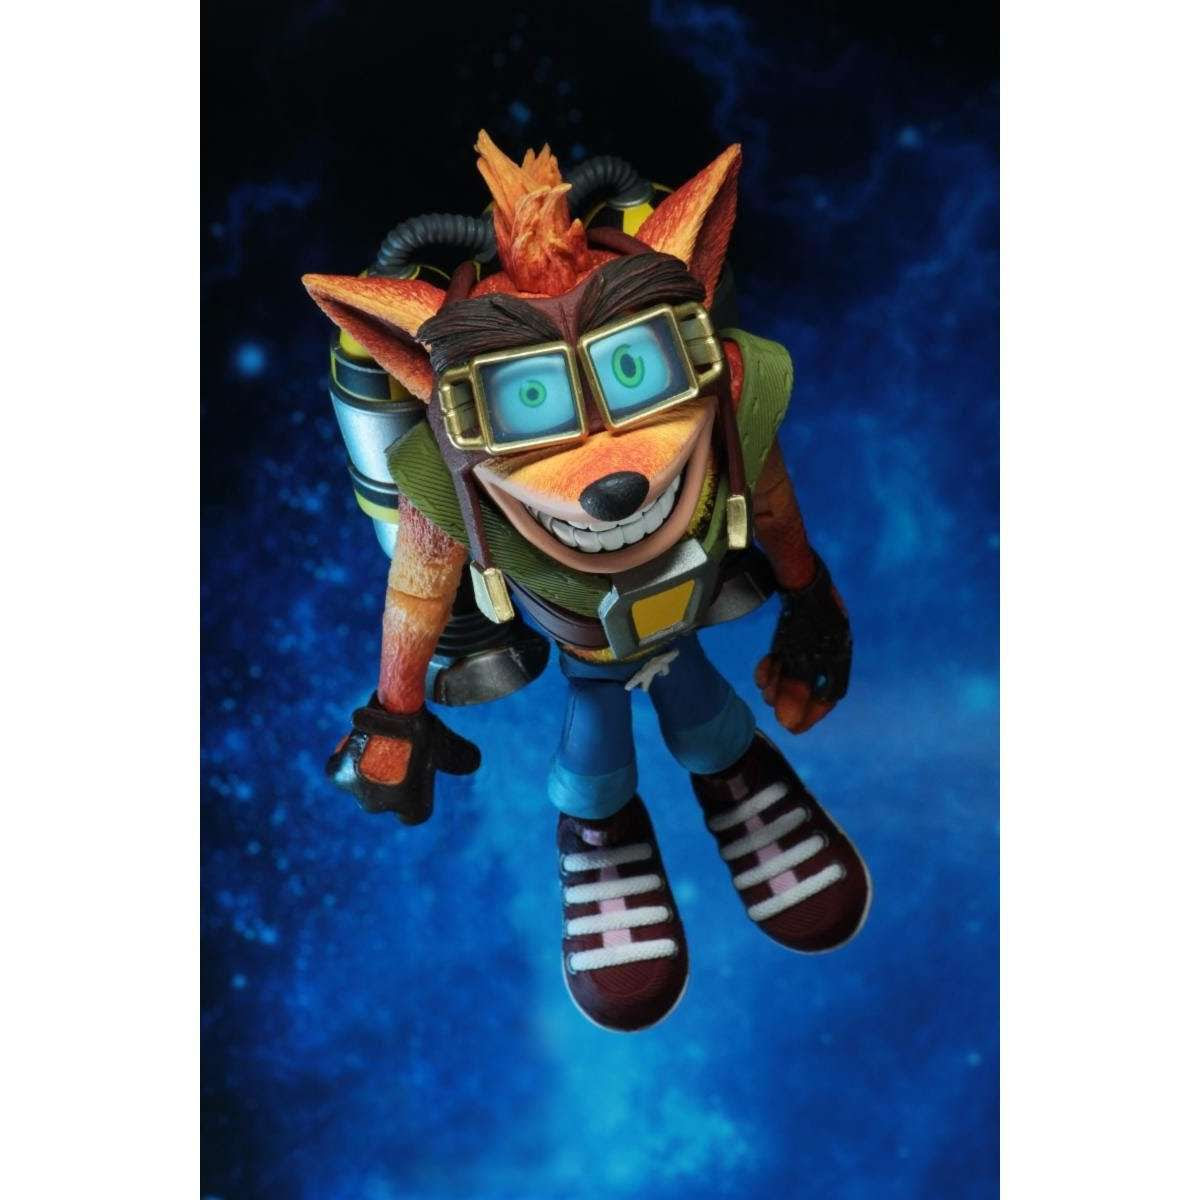 "Image of Crash Bandicoot - 7"" Scale Action Figure - Deluxe Crash with Jetpack"